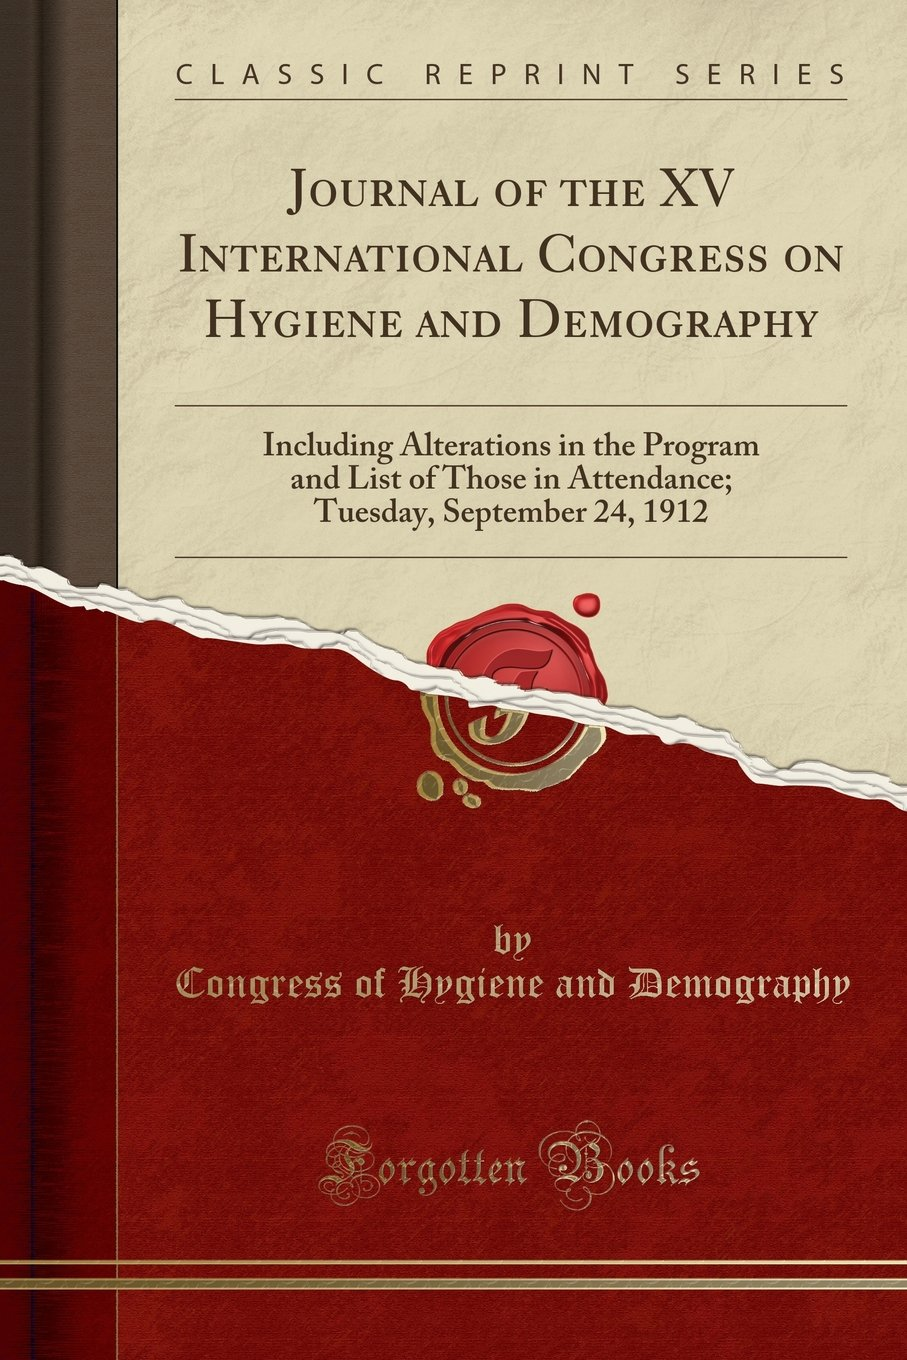 Download Journal of the XV International Congress on Hygiene and Demography: Including Alterations in the Program and List of Those in Attendance; Tuesday, September 24, 1912 (Classic Reprint) ebook